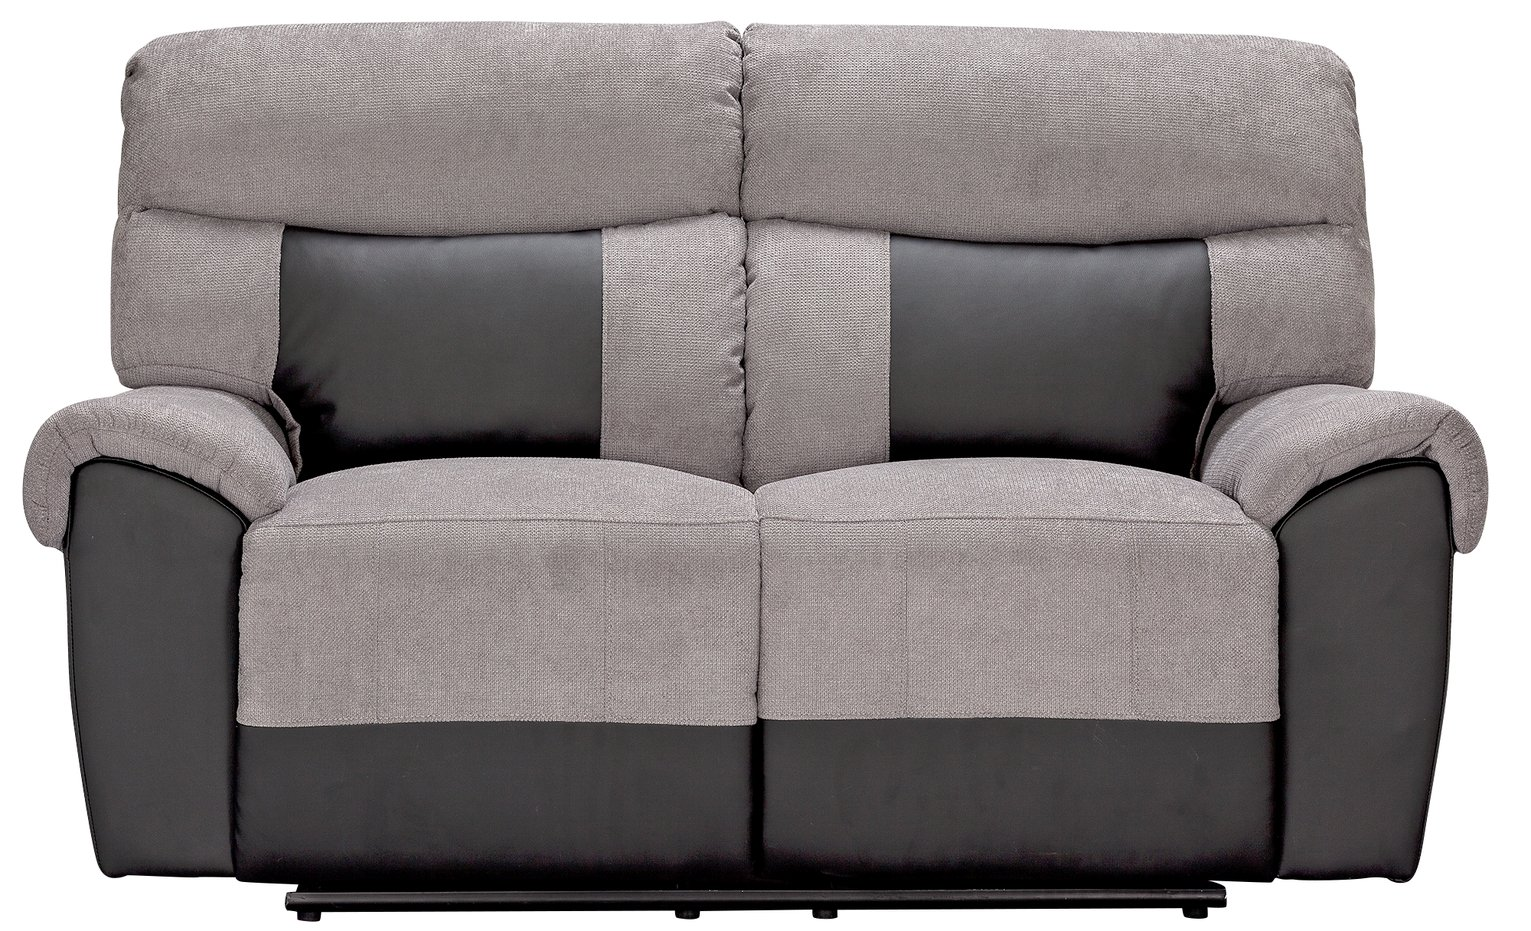 fabric recliner sofa. Argos Home Henry 2 Seater Fabric Recliner Sofa - Charcoal N